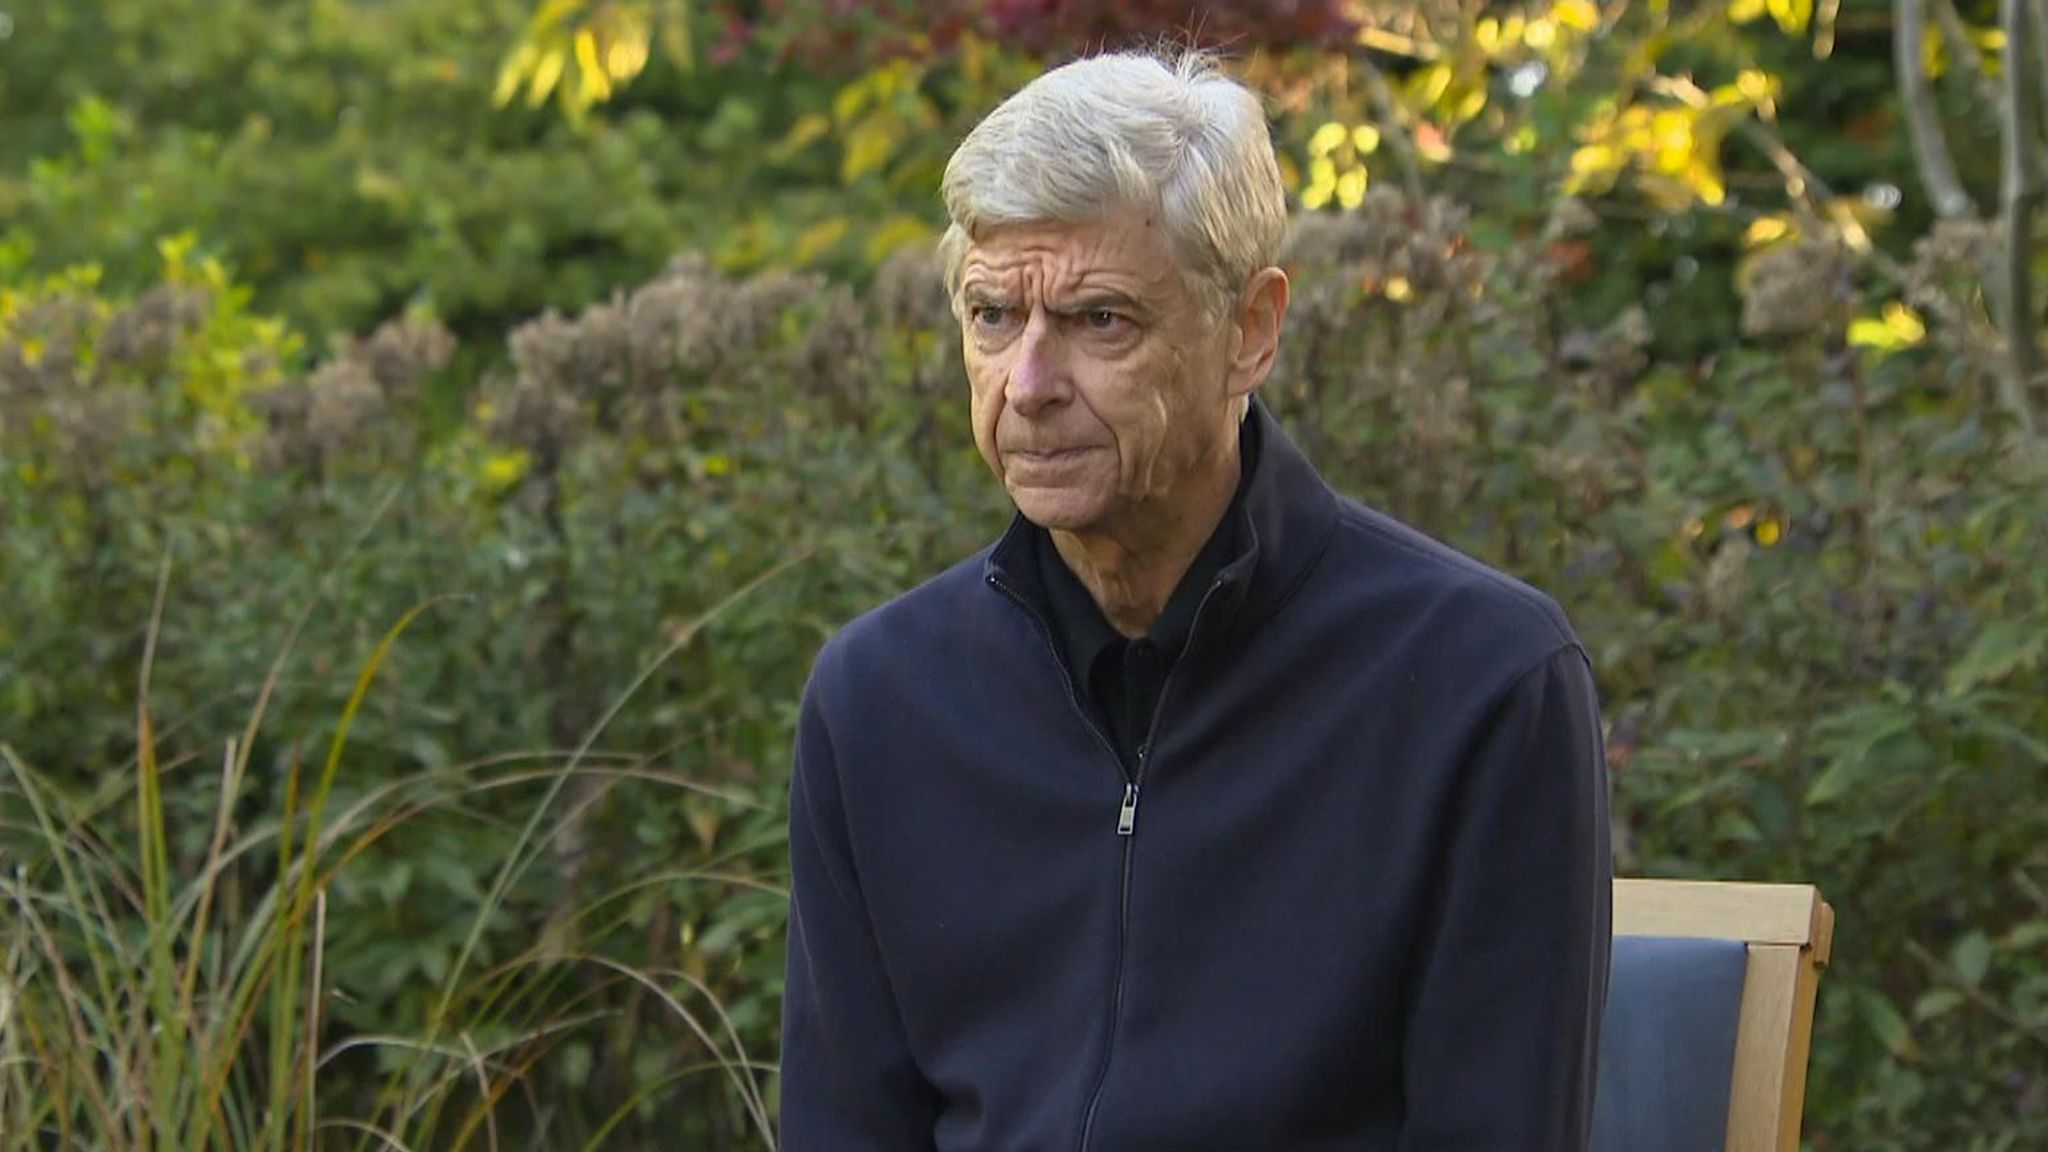 Former Arsenal Manager Arsene Wenger Urges Premier League To Share Wealth With Smaller Clubs Uk News Sky News